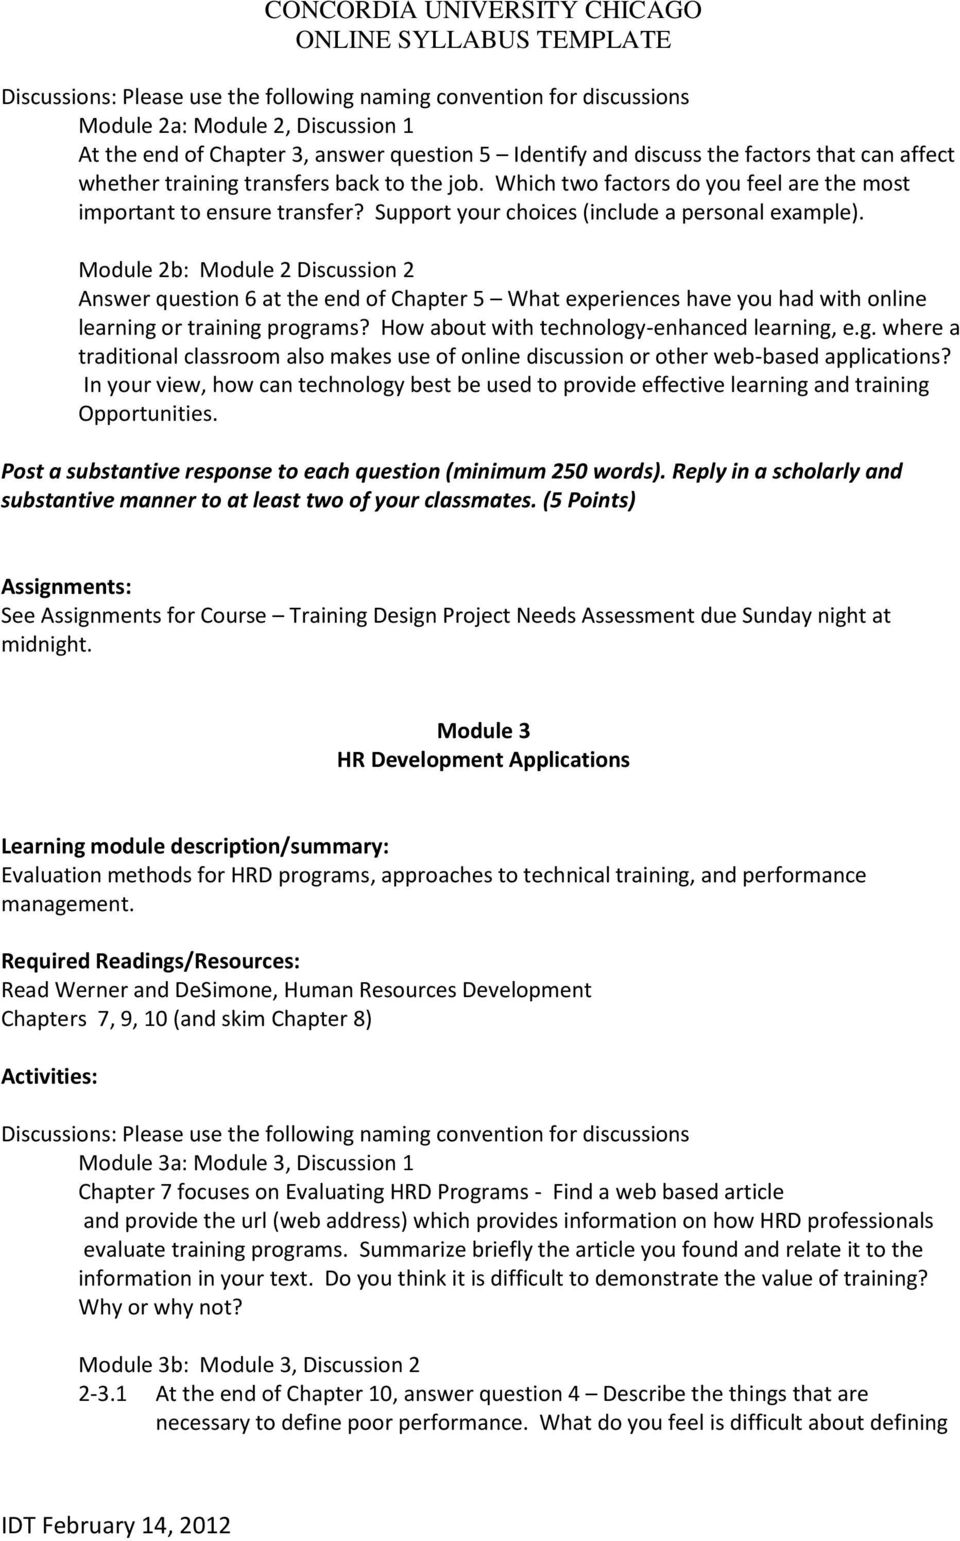 Awesome Training Module Template Ideas - Entry Level Resume ...